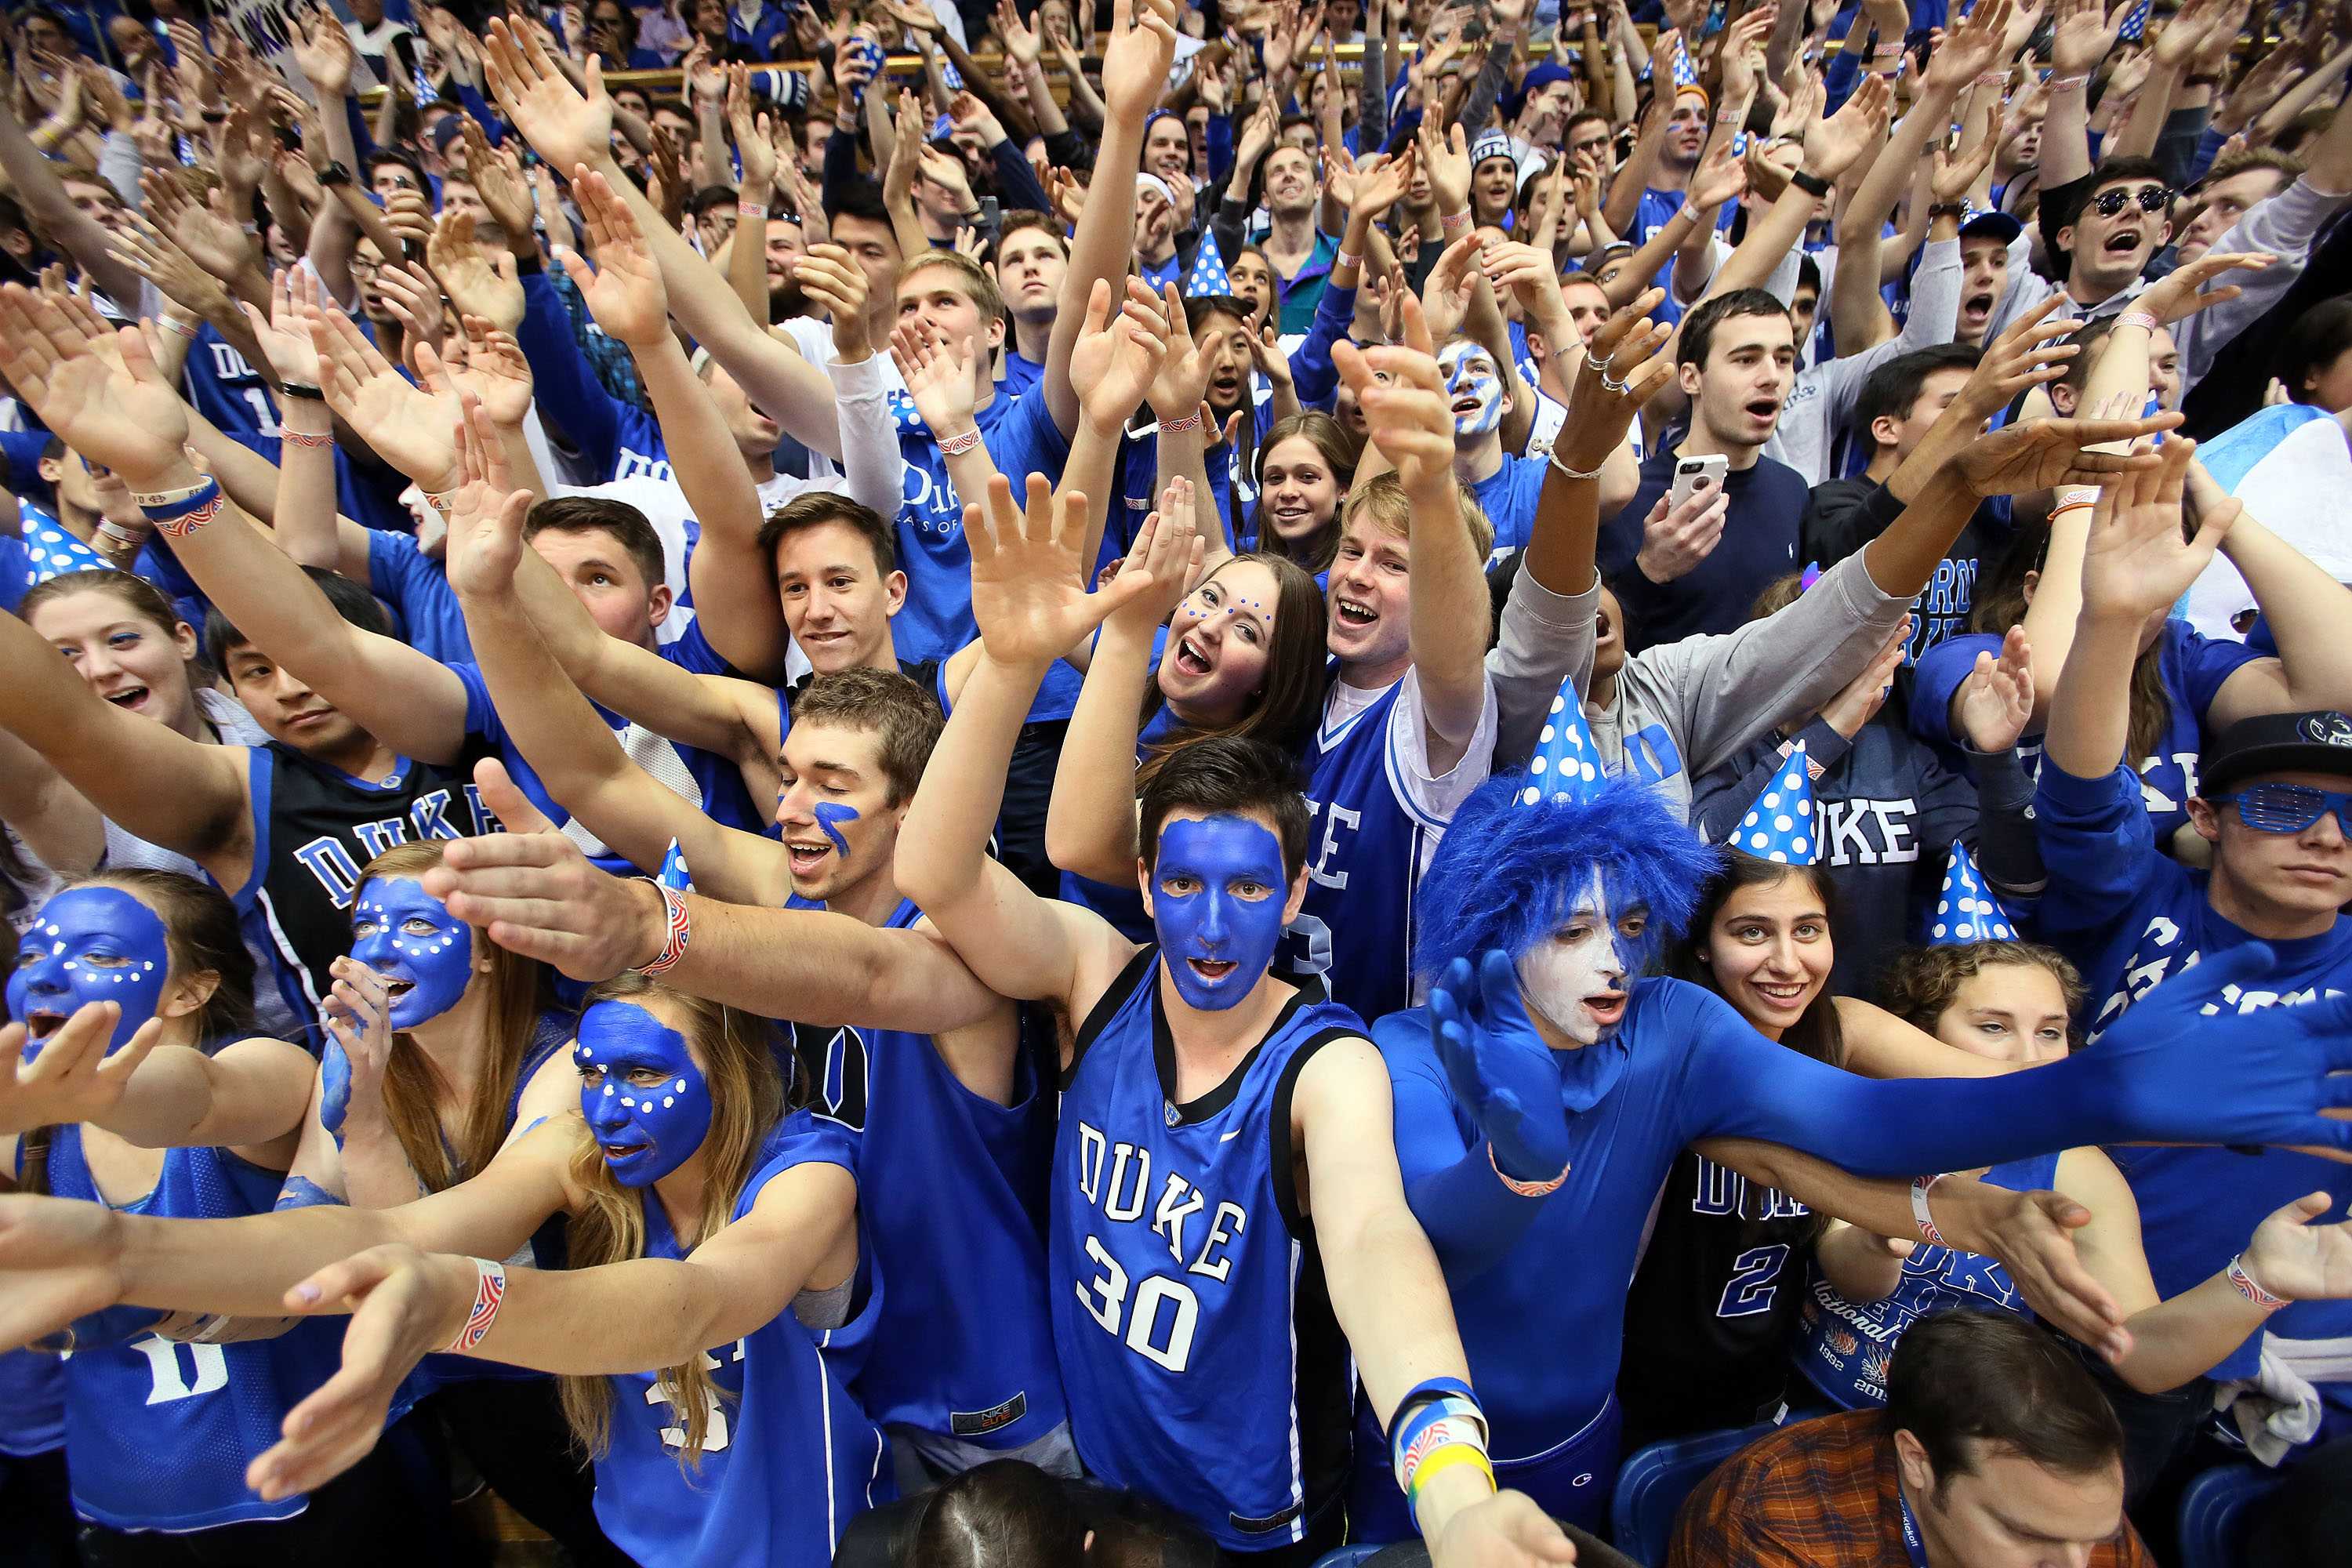 The Cameron Crazies would love to see Wendell Carter in a Duke uniform